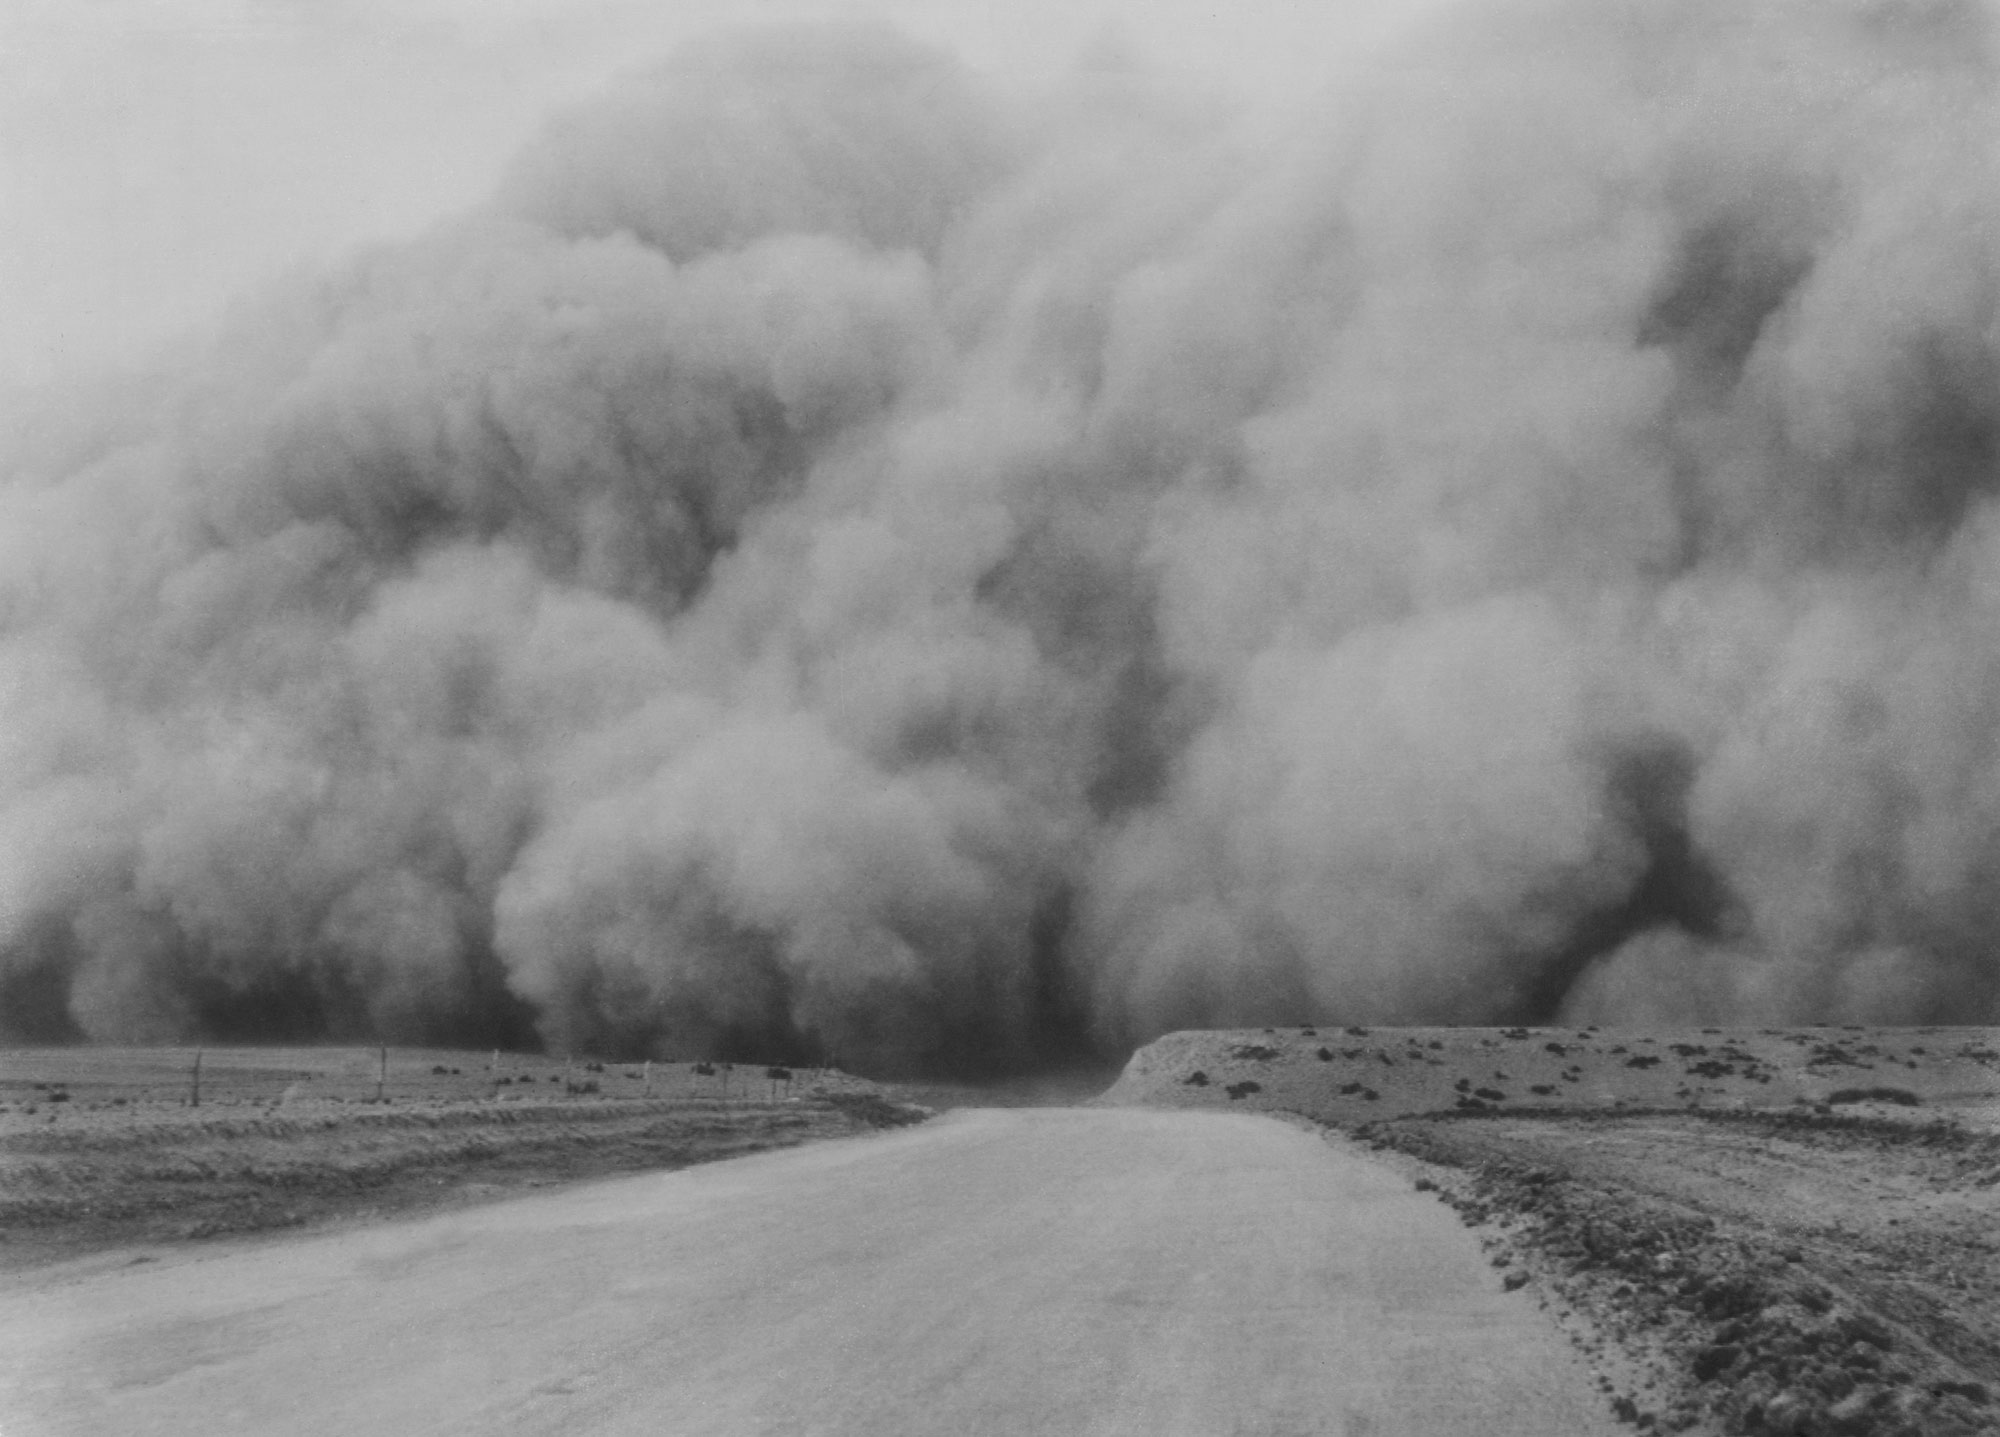 Cloud from the Dust Bowl